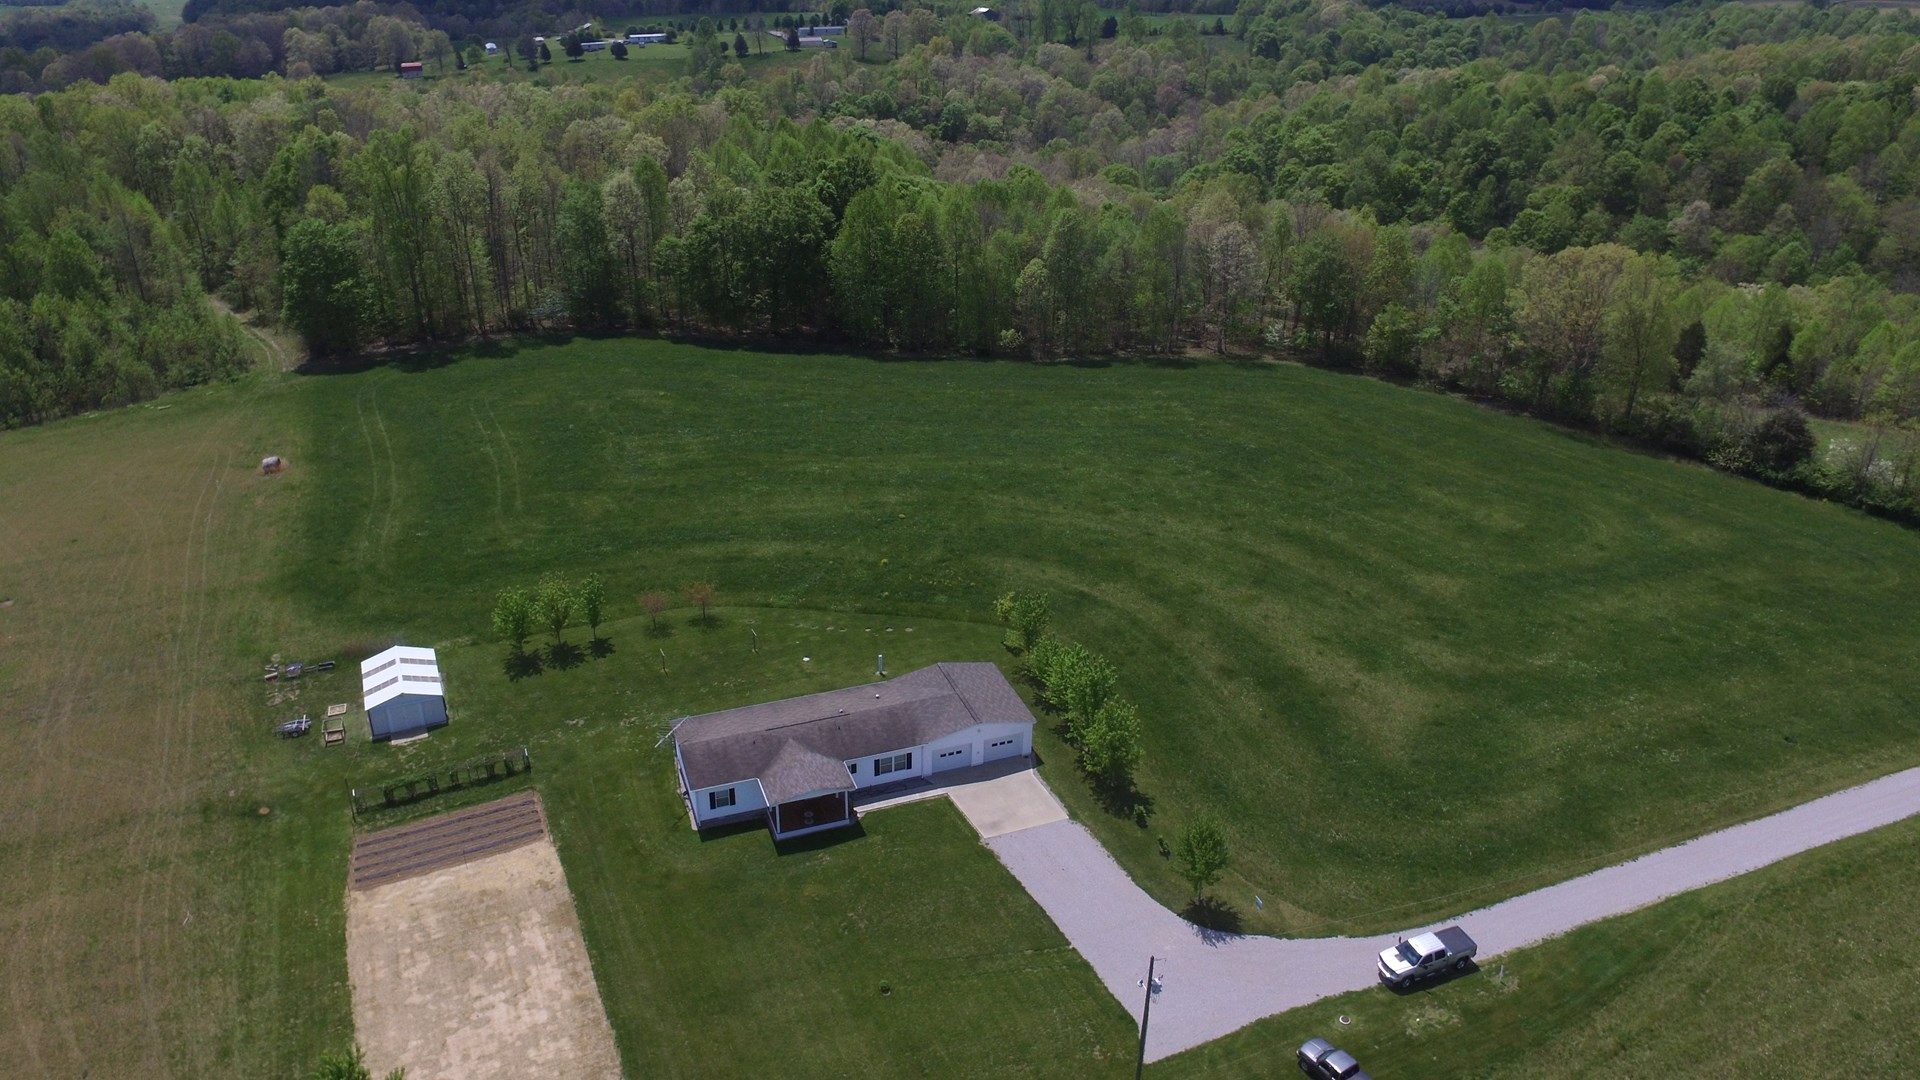 HOME WITH GARAGE & OUTBUILDING ON 6 ACRES - LIBERTY KENTUCKY